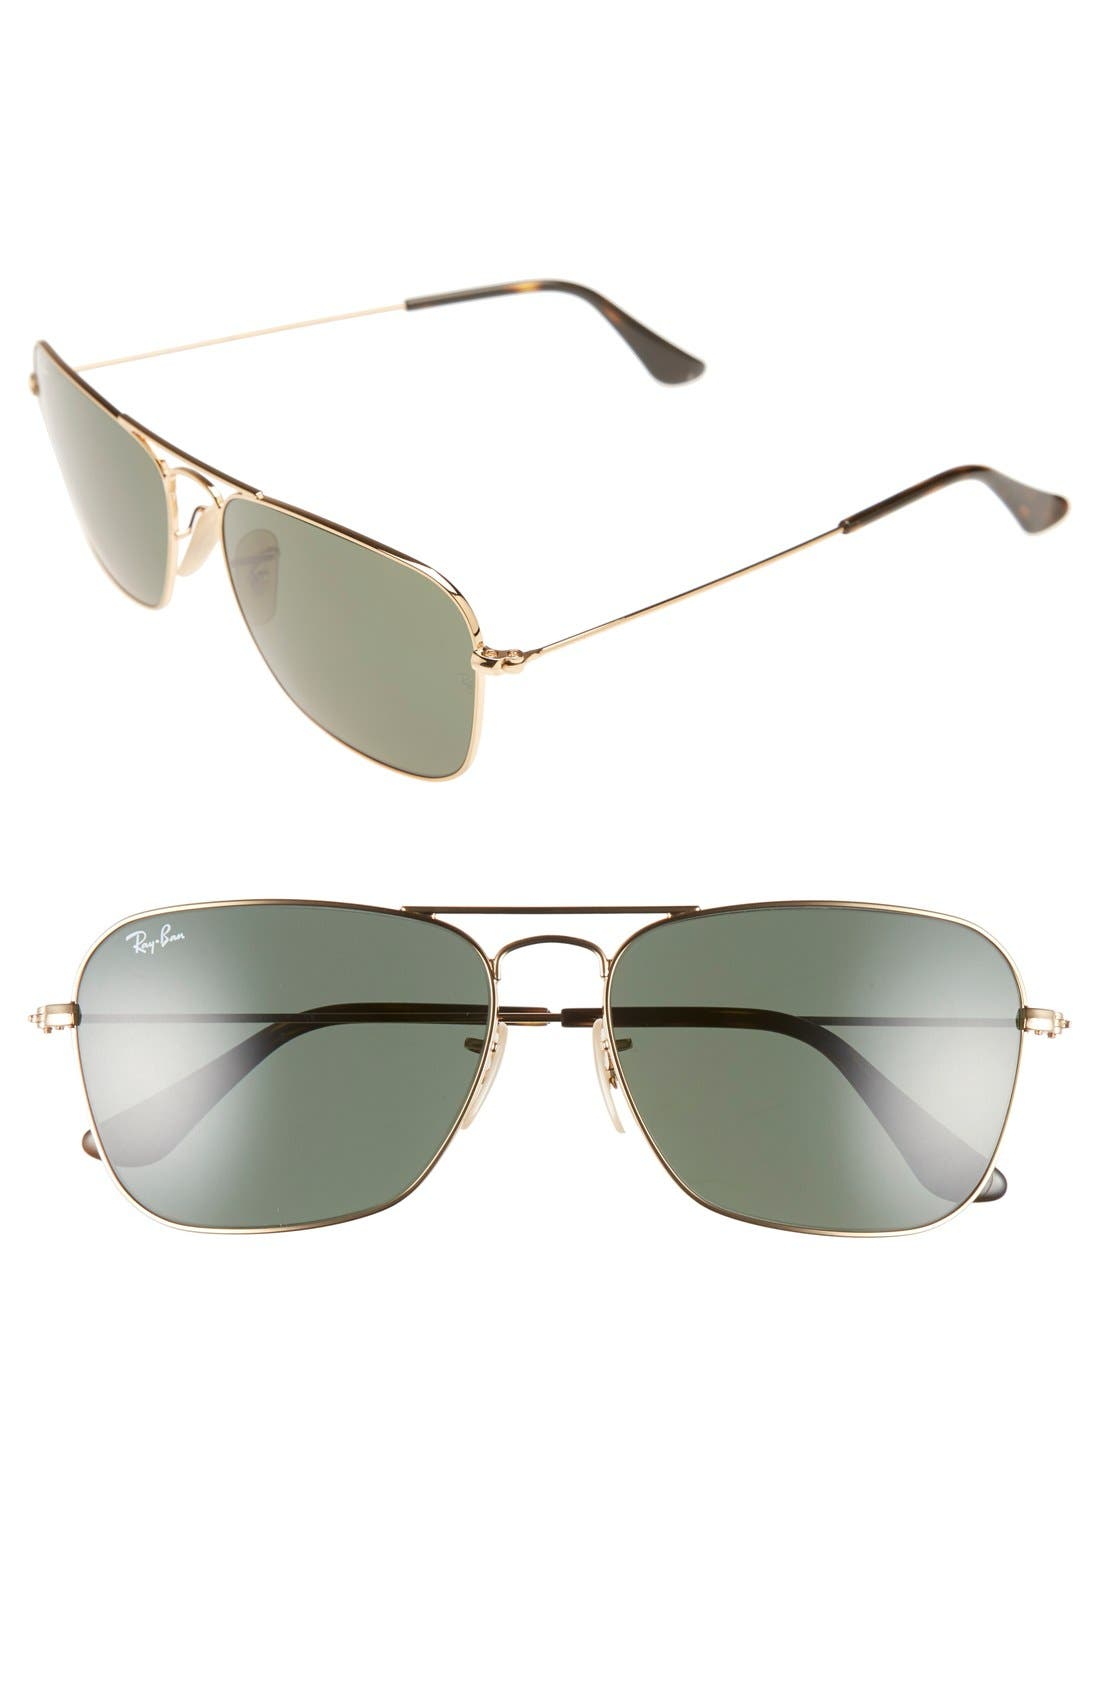 Main Image - Ray-Ban Caravan 58mm Aviator Sunglasses